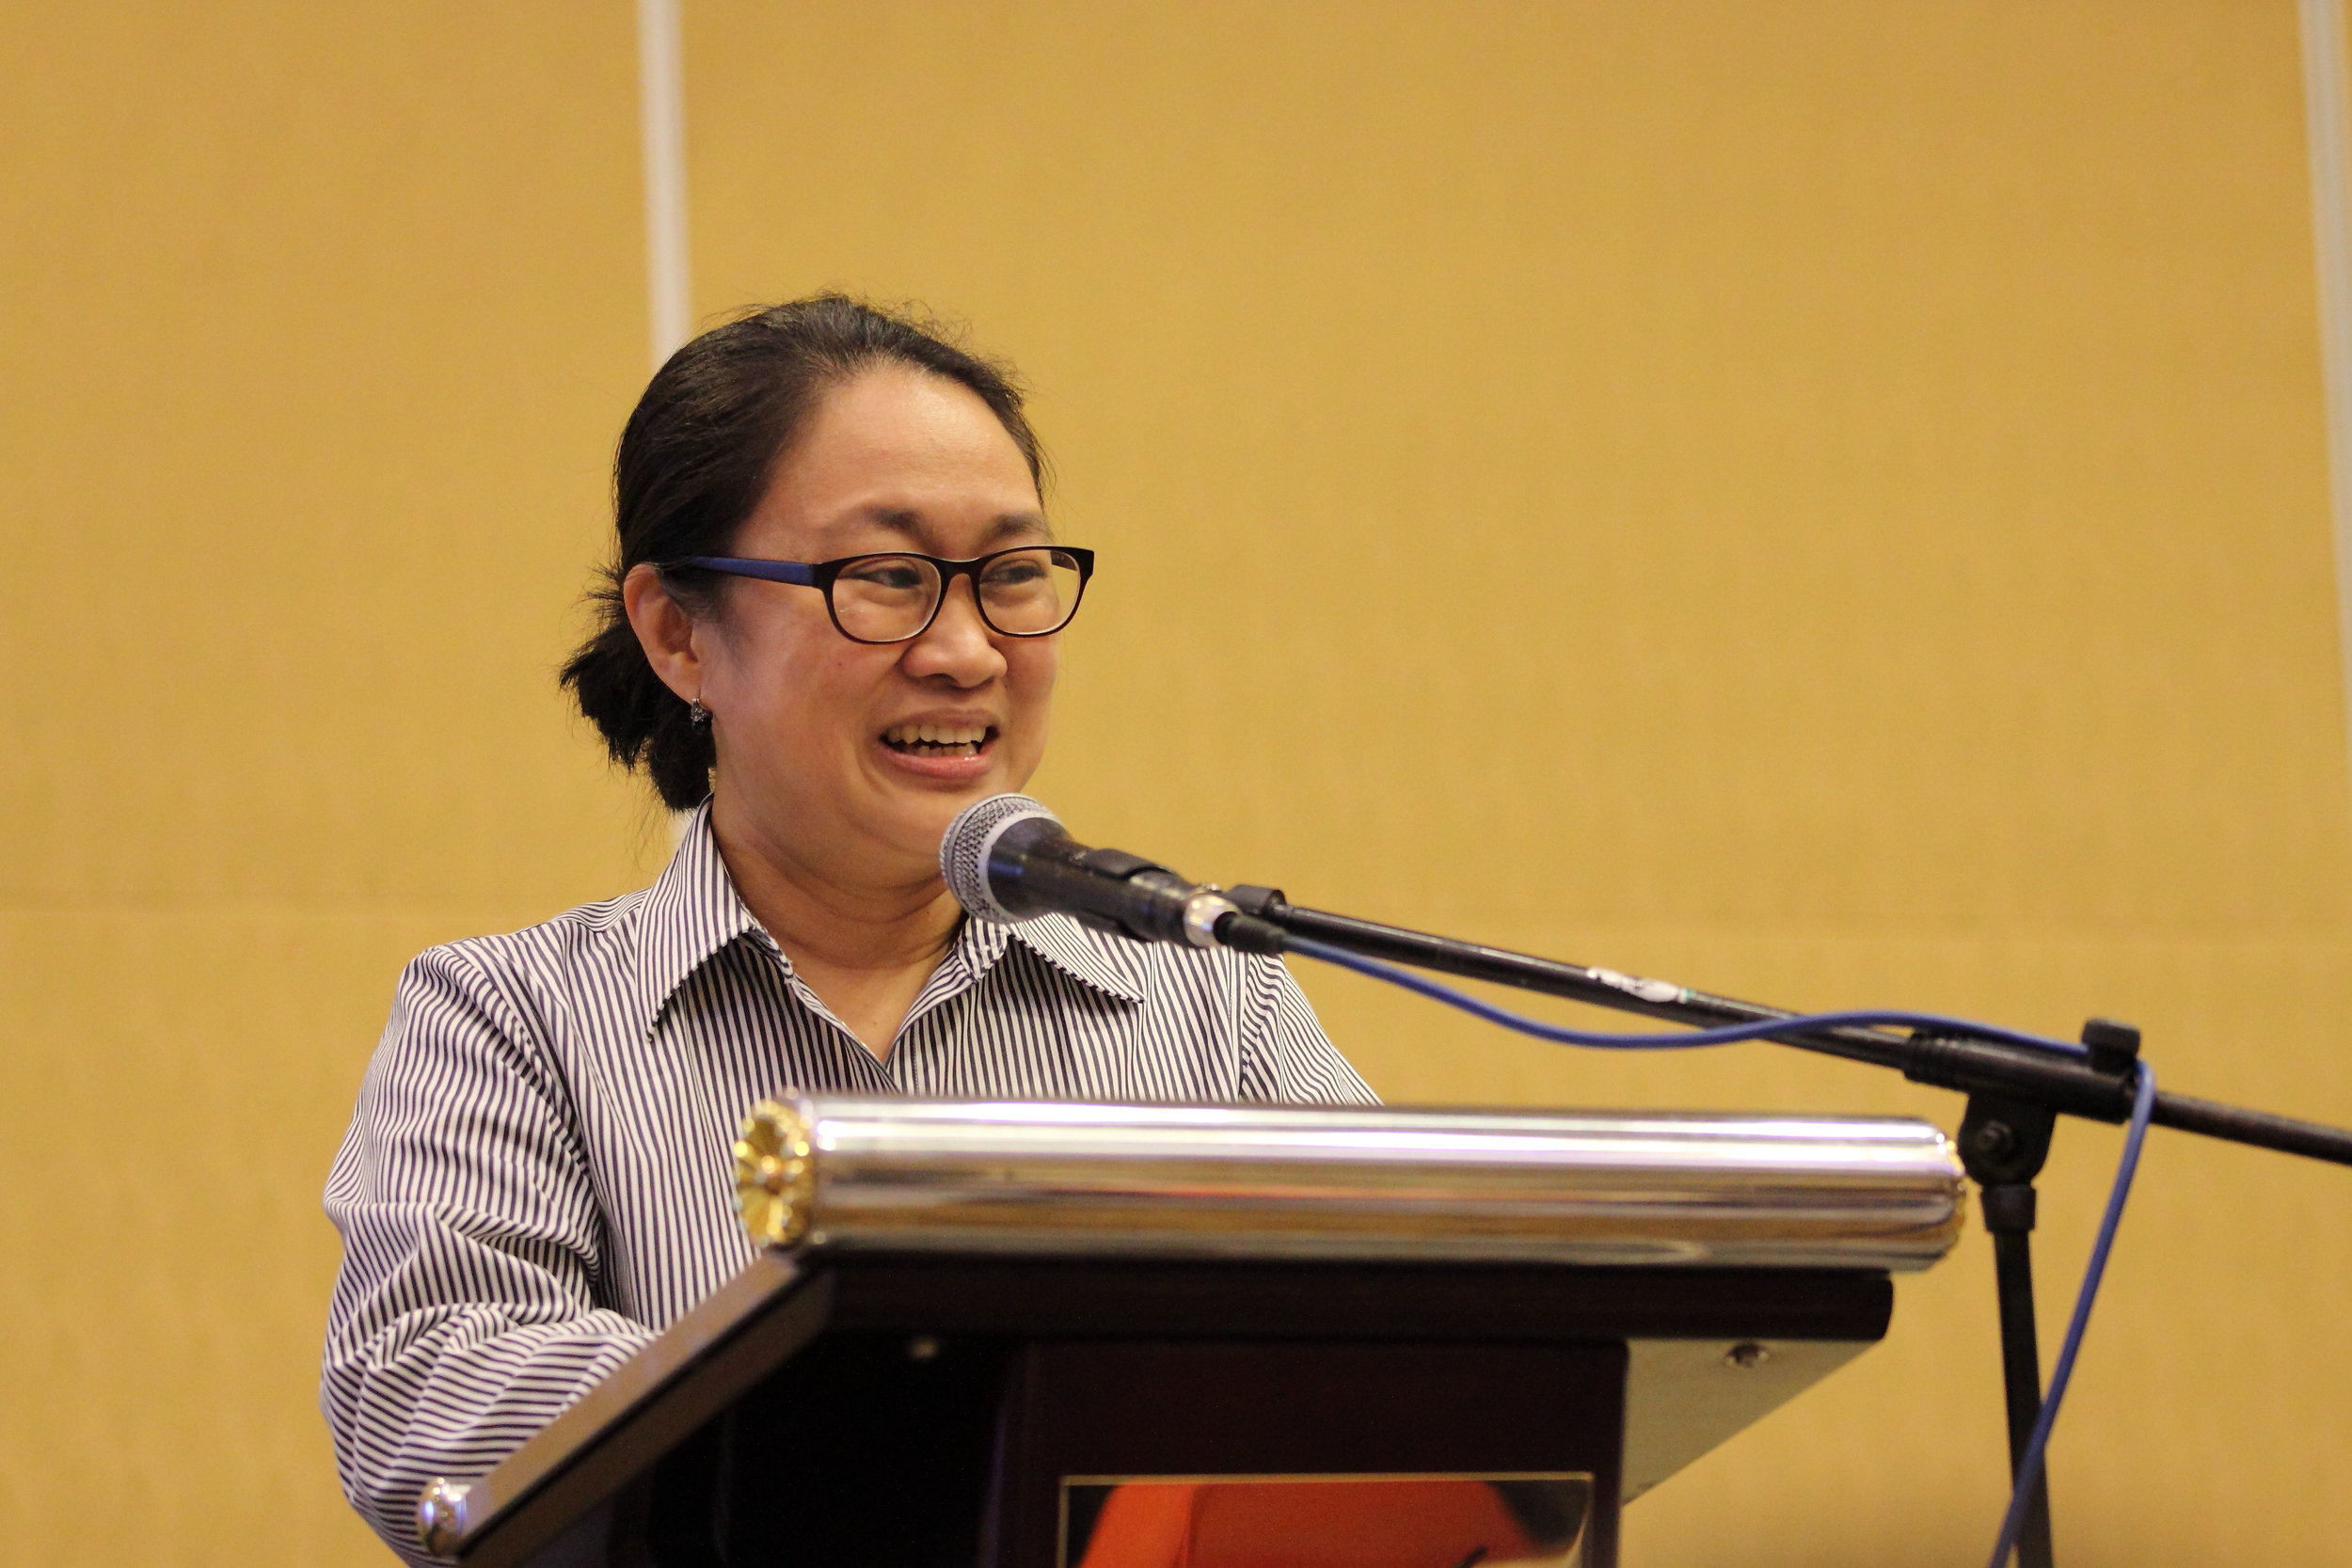 Dr. Rumalie Corvera, president & CEO of The Ruth Foundation, opened the event and gave a talk on the Filipino response to the burden of hospice care.